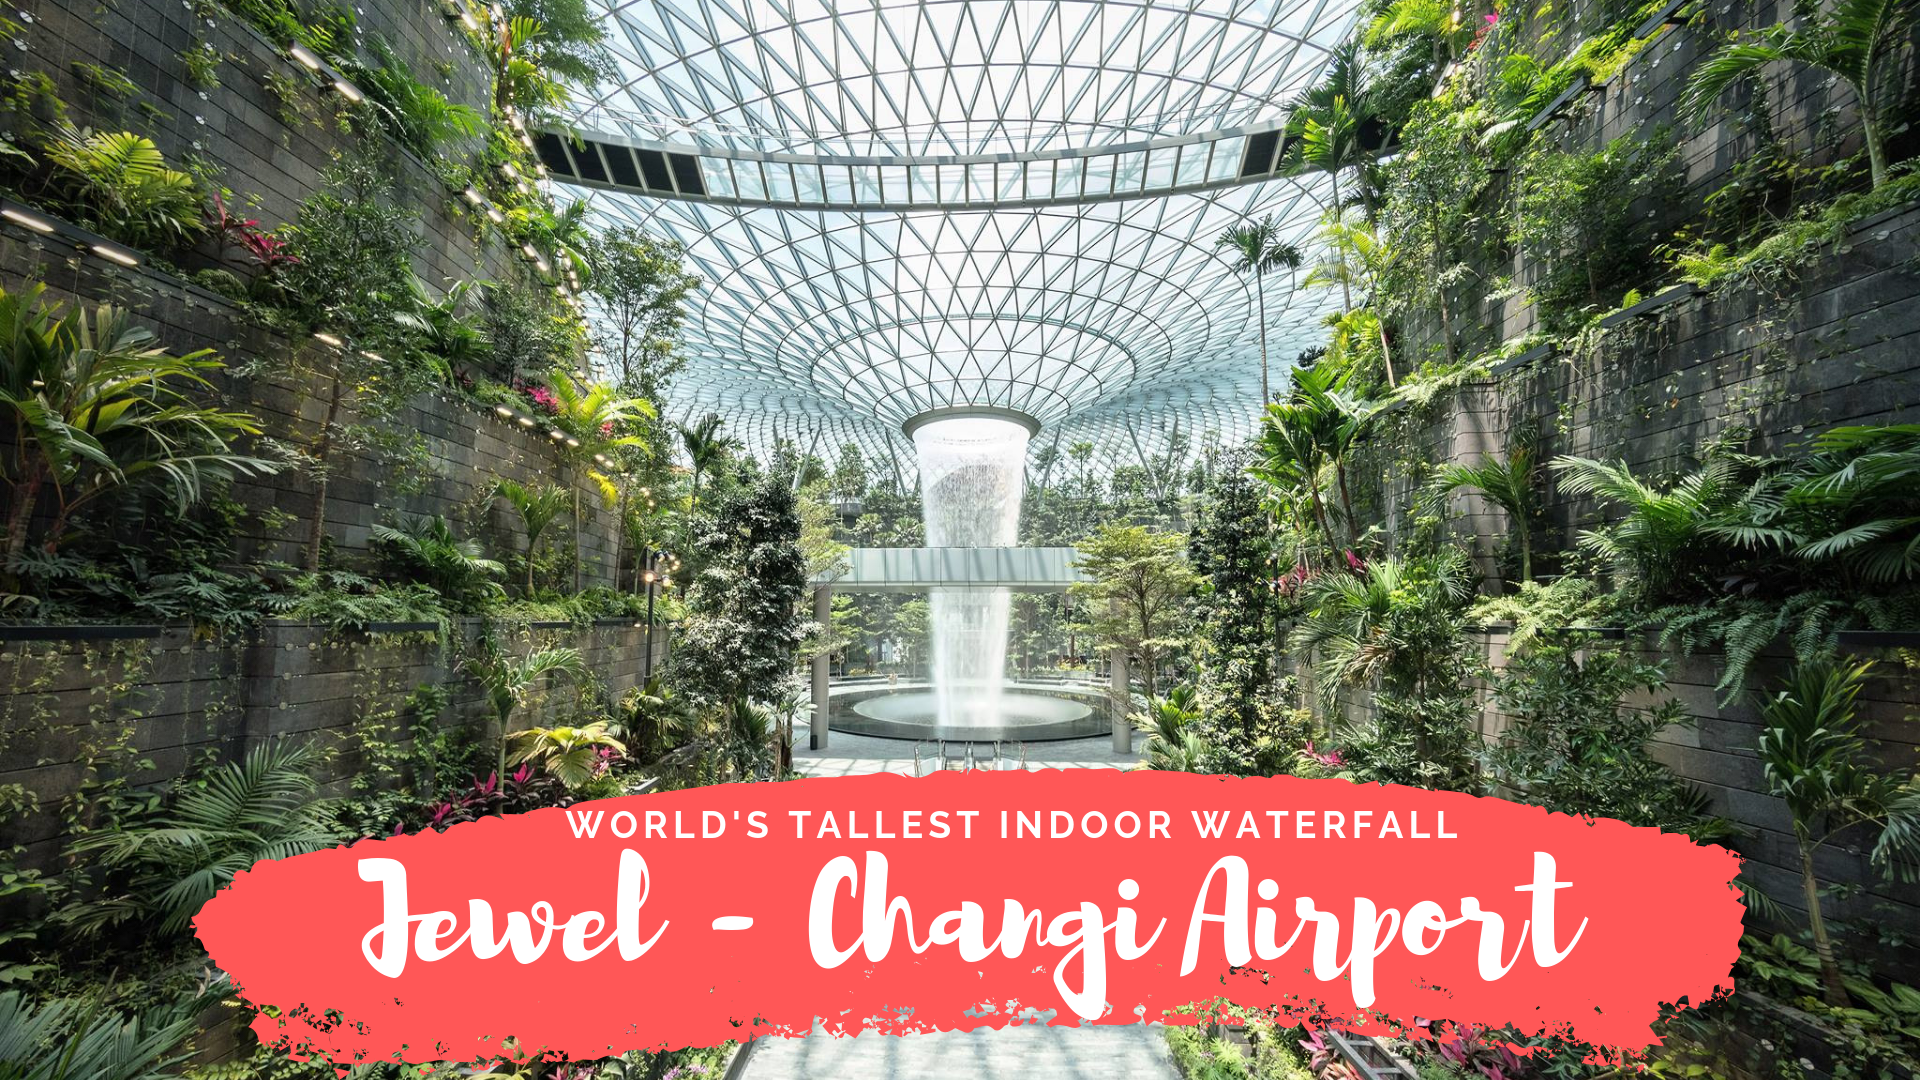 World's Tallest Indoor Waterfall at Jewel Changi Airport